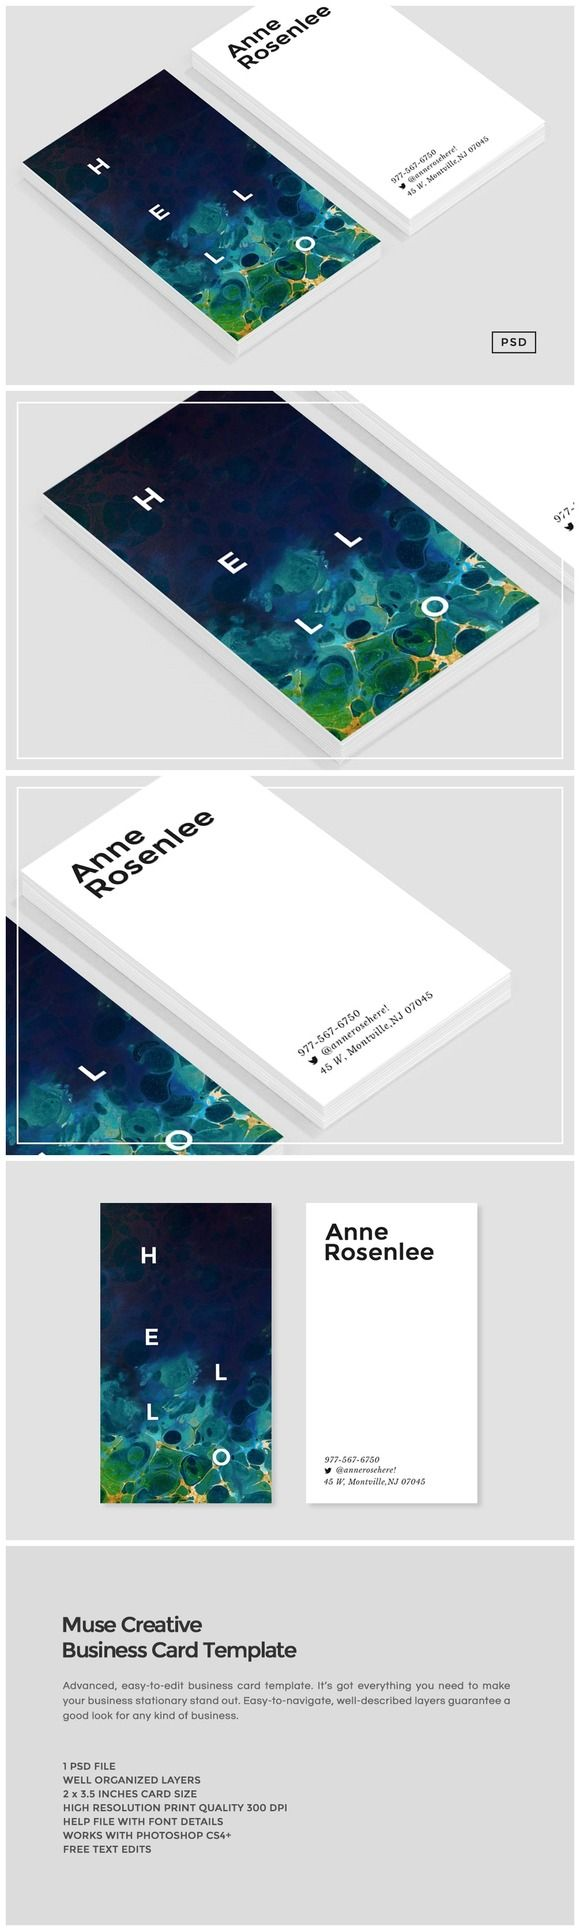 Muse business card template by the design label on creativemarket muse business card template by the design label on creativemarket reheart Choice Image